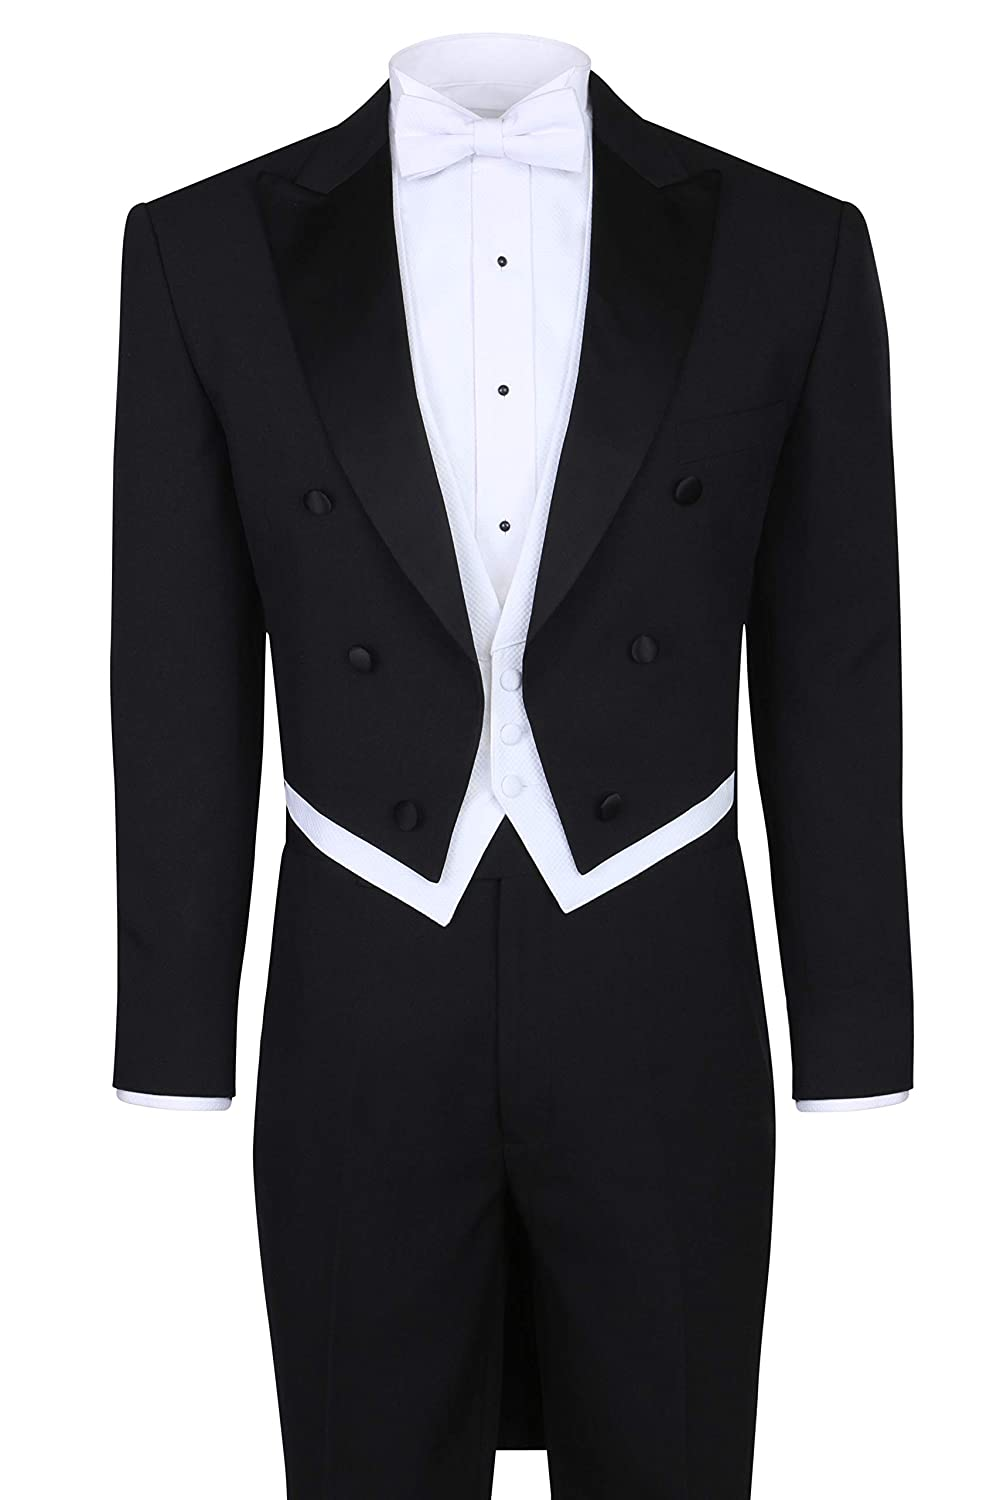 Peaky Blinders & Boardwalk Empire: Men's 1920s Gangster Clothing Mens Tuxedo Tails - Tailcoat and Trousers Available in Black or White $130.65 AT vintagedancer.com